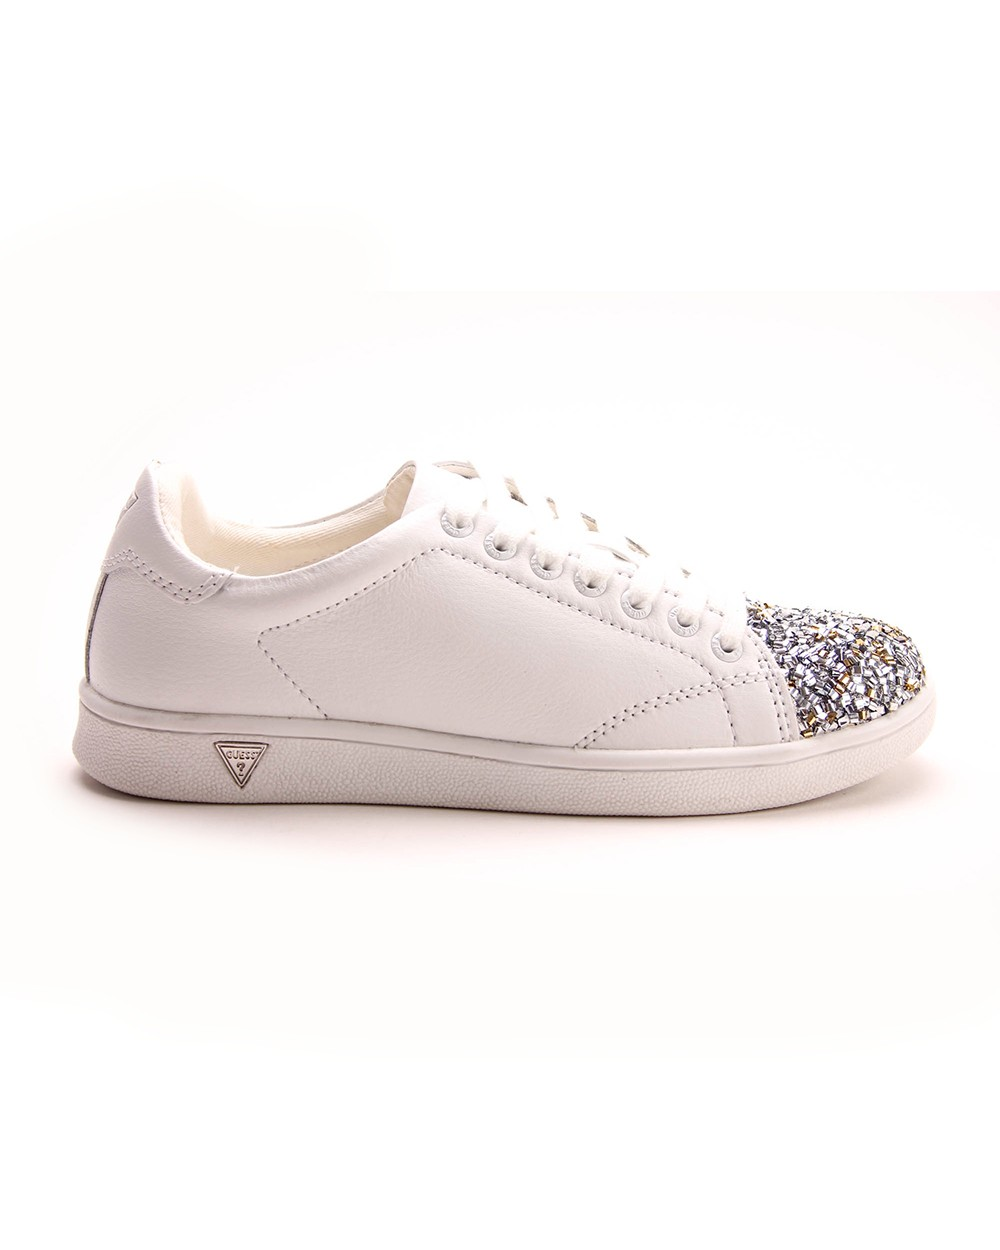 GUESS FLSPE1 - Sneakers Guess